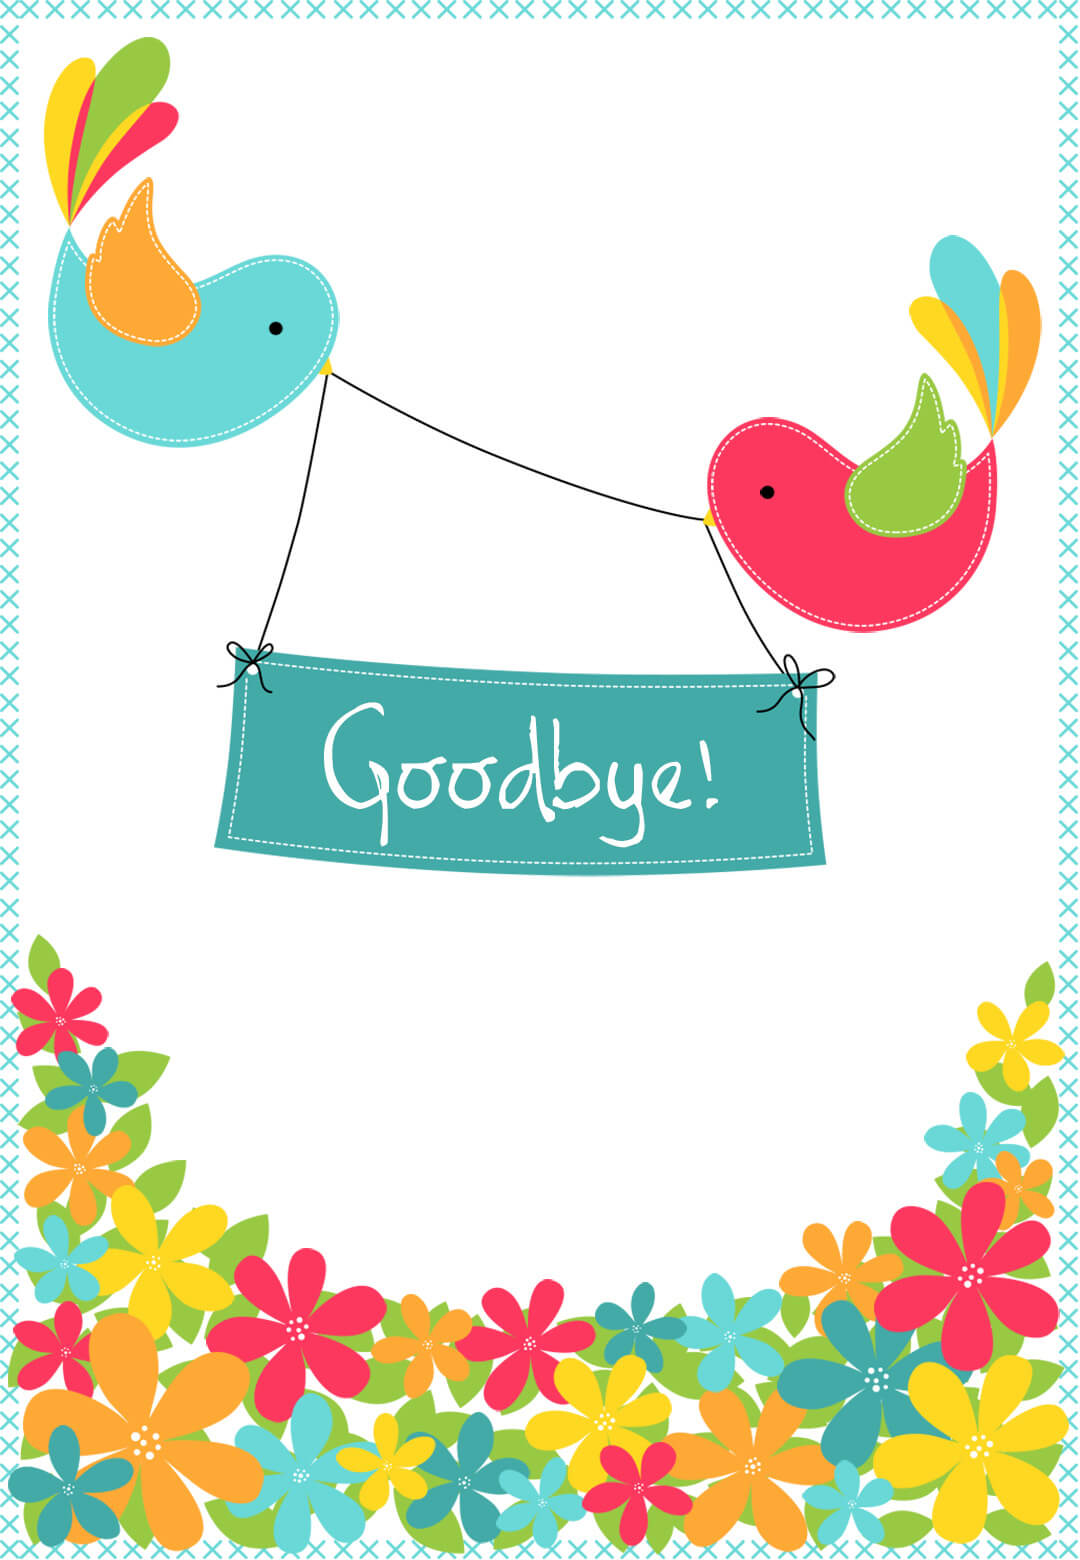 Goodbye From Your Colleagues - Good Luck Card (Free Regarding Goodbye Card Template